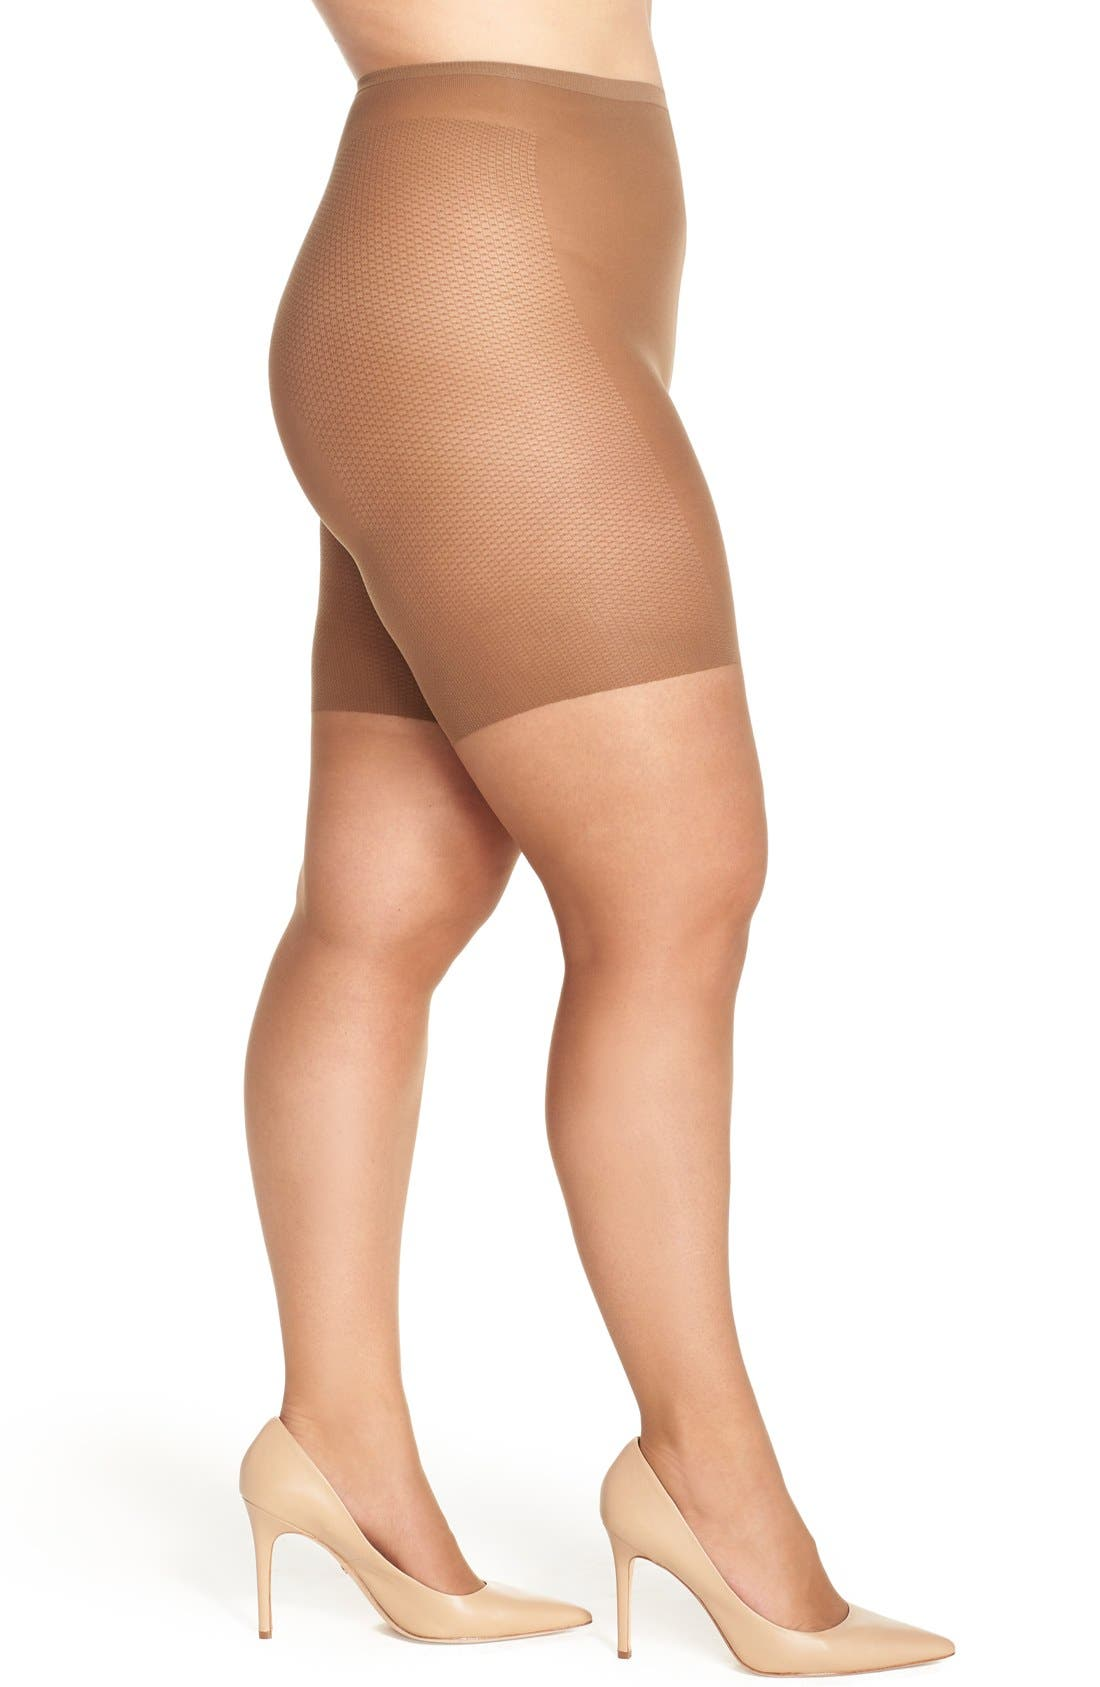 Berkshire Light Control Top Pantyhose (Plus Size)